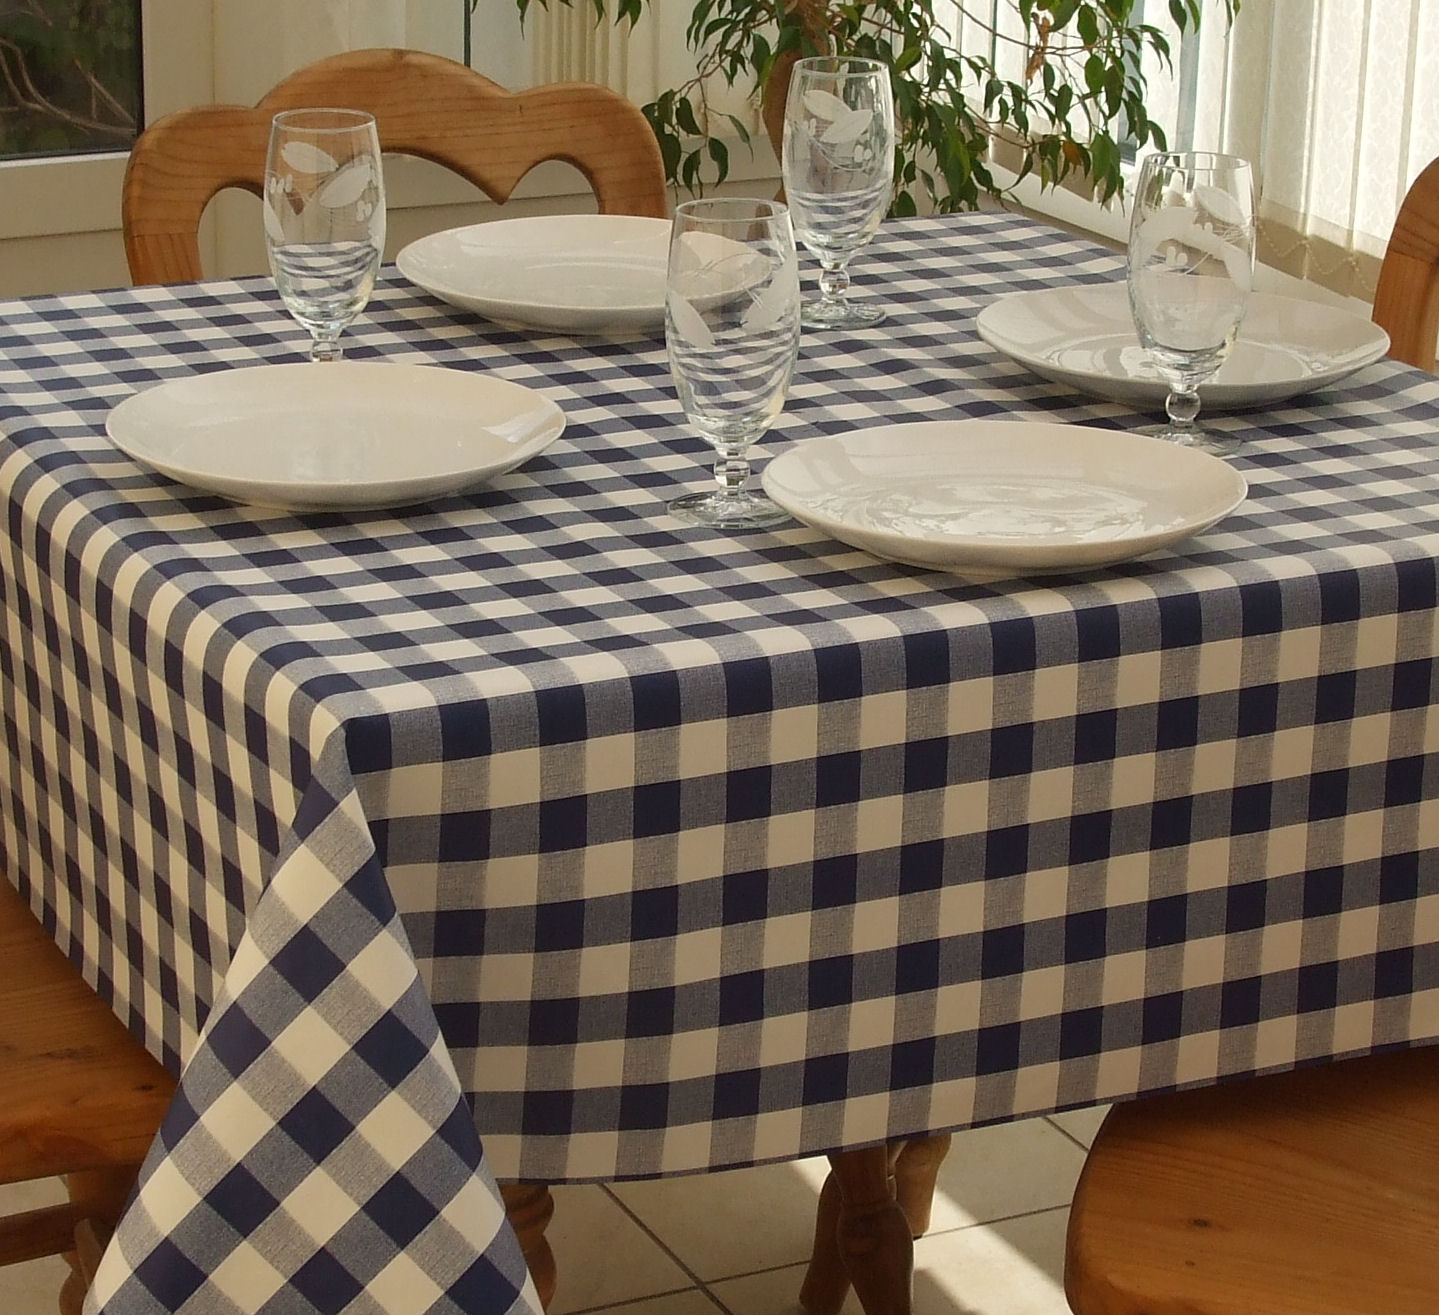 Square Wipe Clean Tablecloth Blue Gingham The